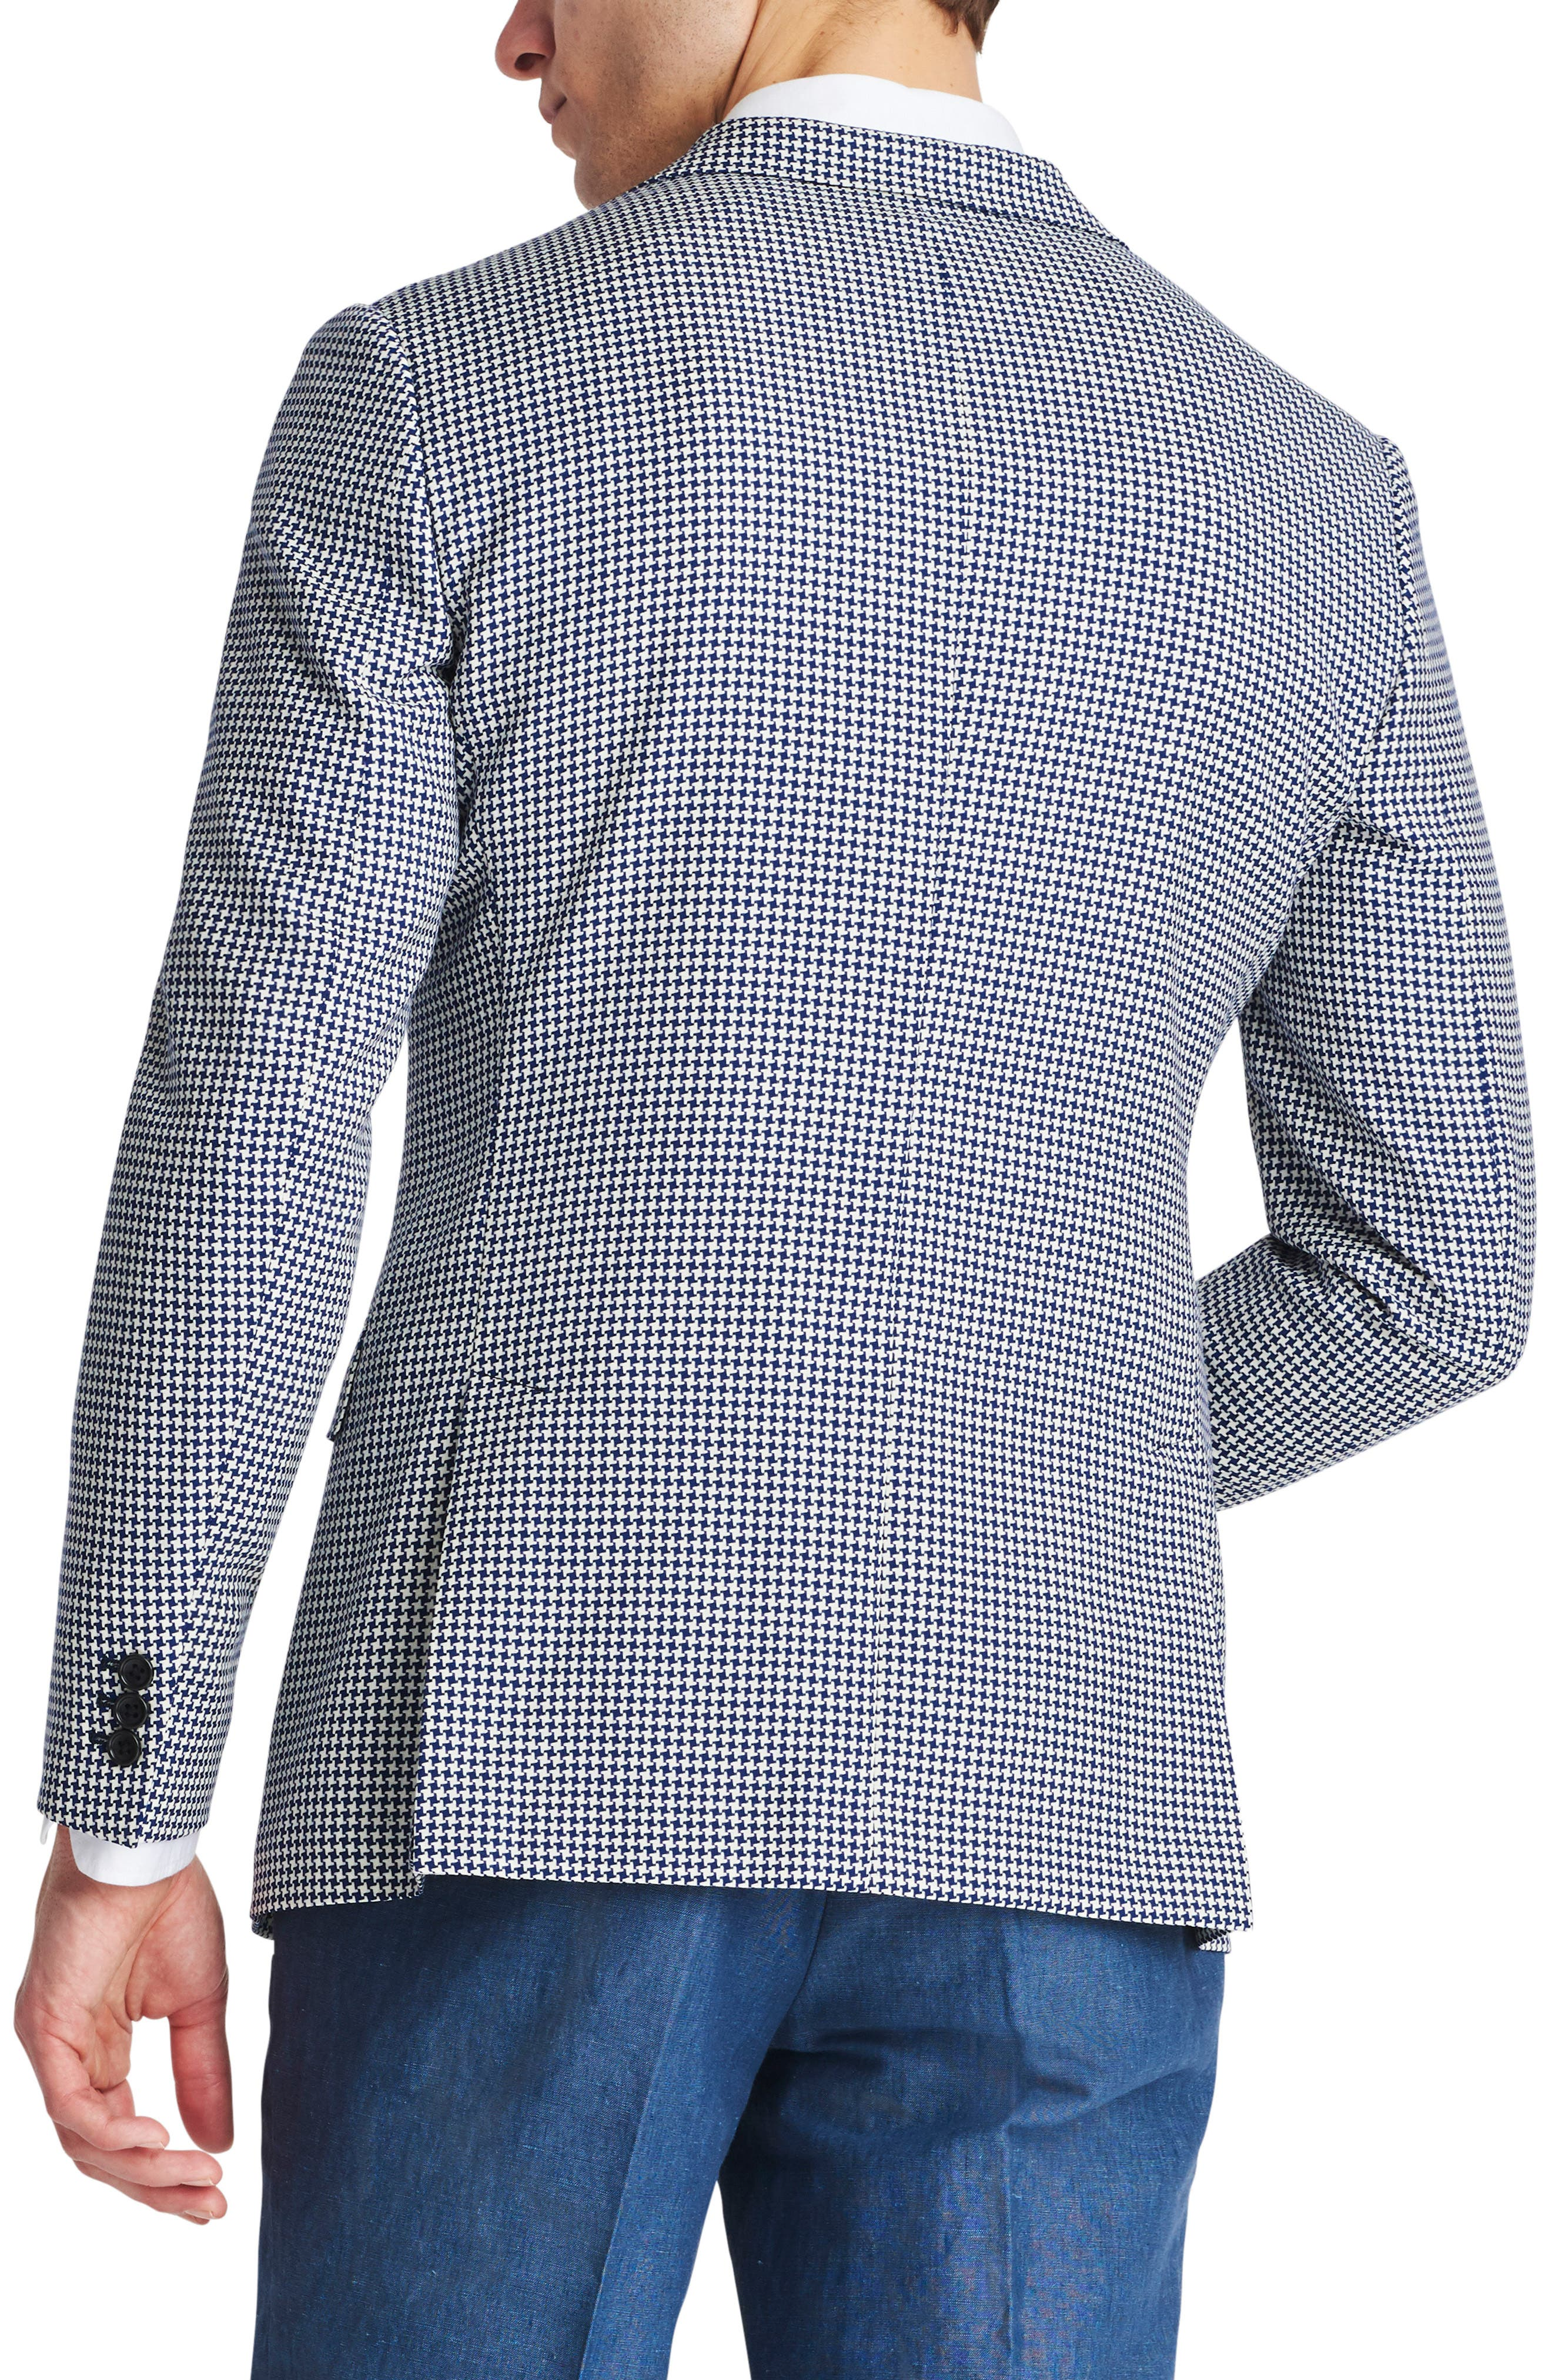 Capstone Slim Fit Houndstooth Wool Sport Coat,                             Alternate thumbnail 2, color,                             Navy White Houndstooth